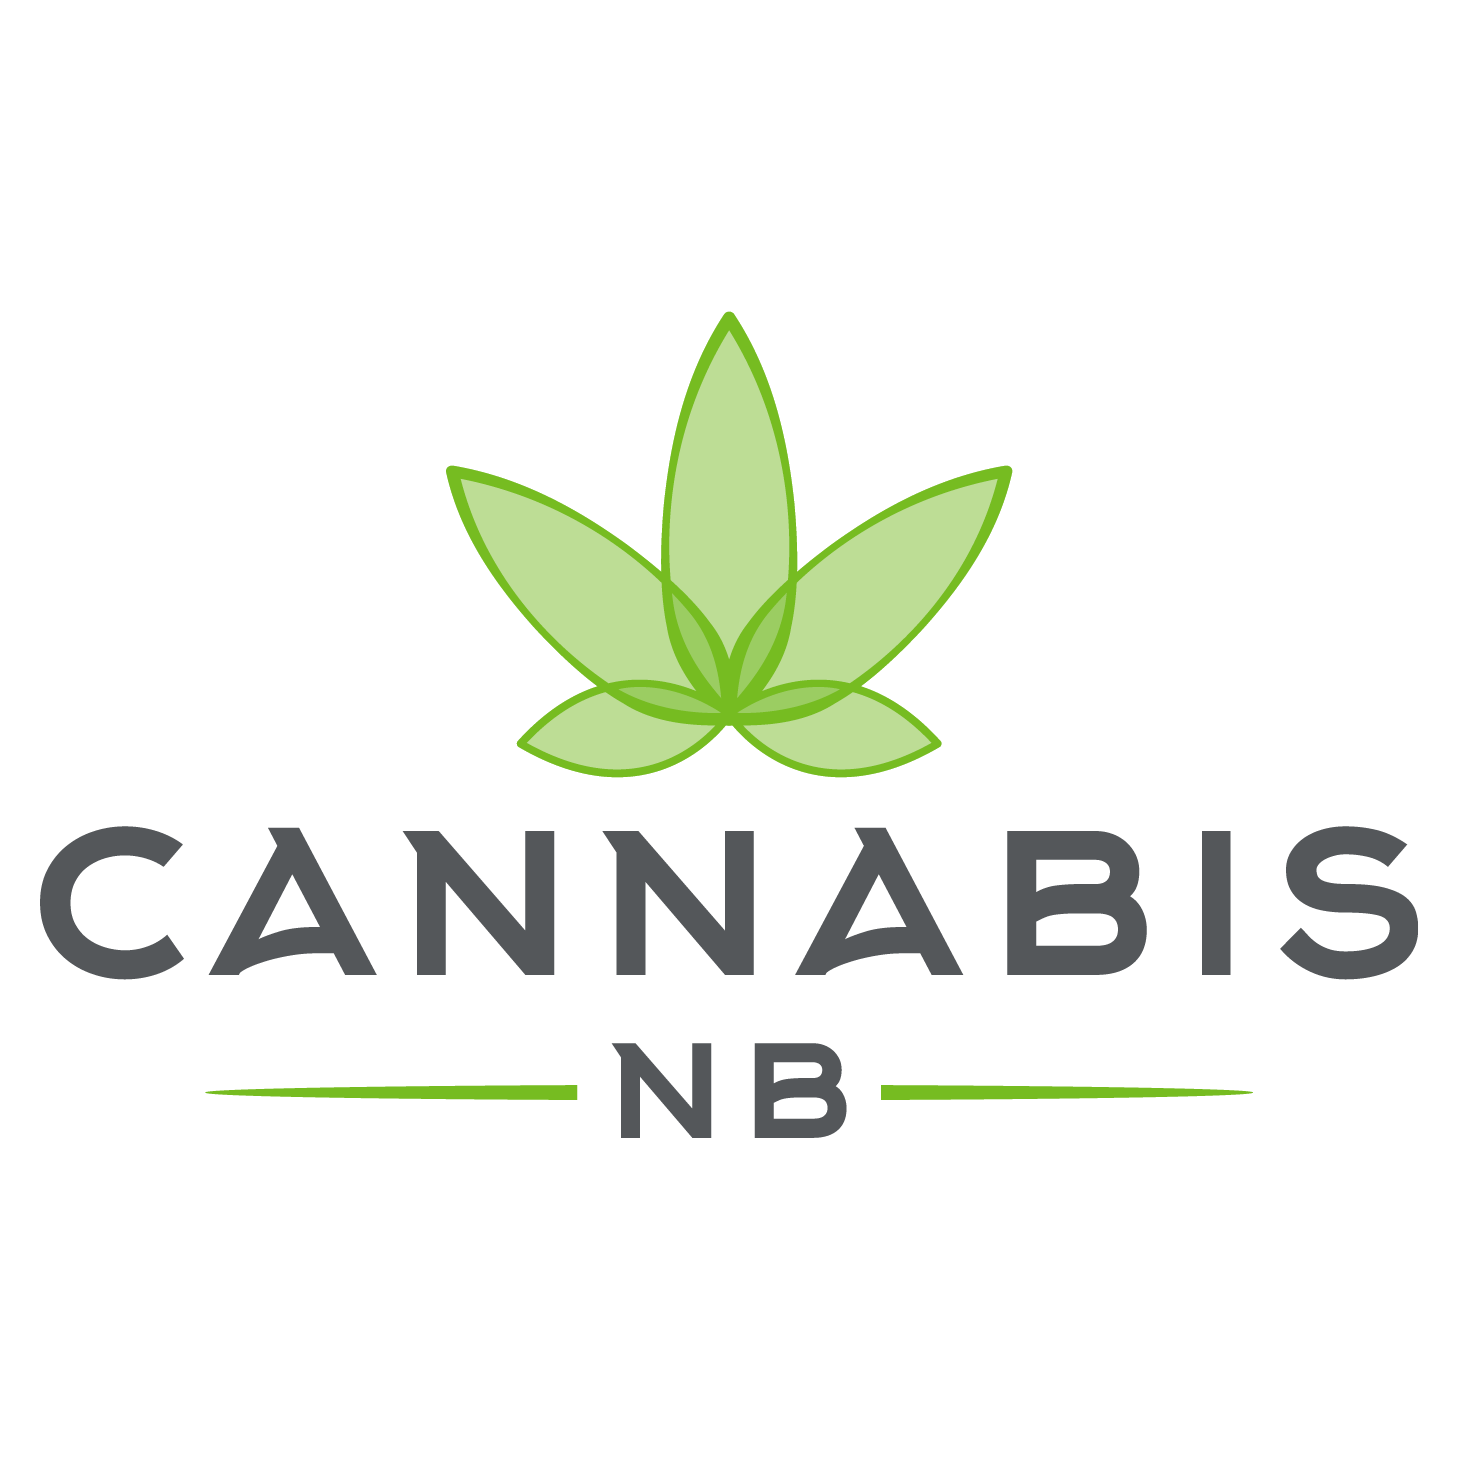 Cannabis NB in Fredericton: Cannabis NB logo